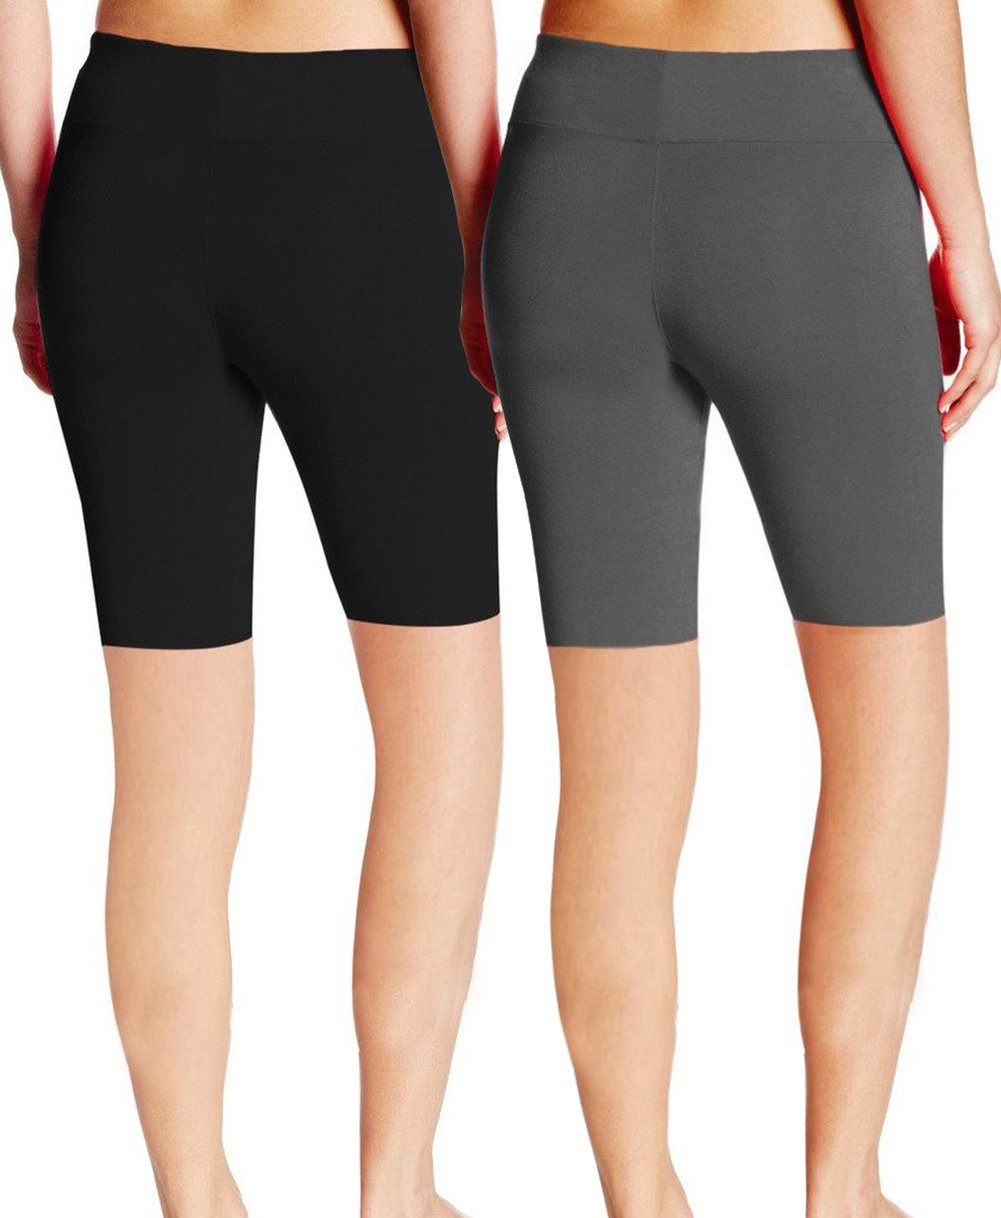 ABUSA Women's Cotton Workout Bike Yoga Shorts - Tummy Control(S,Pack Of 2 - Black & Grey)